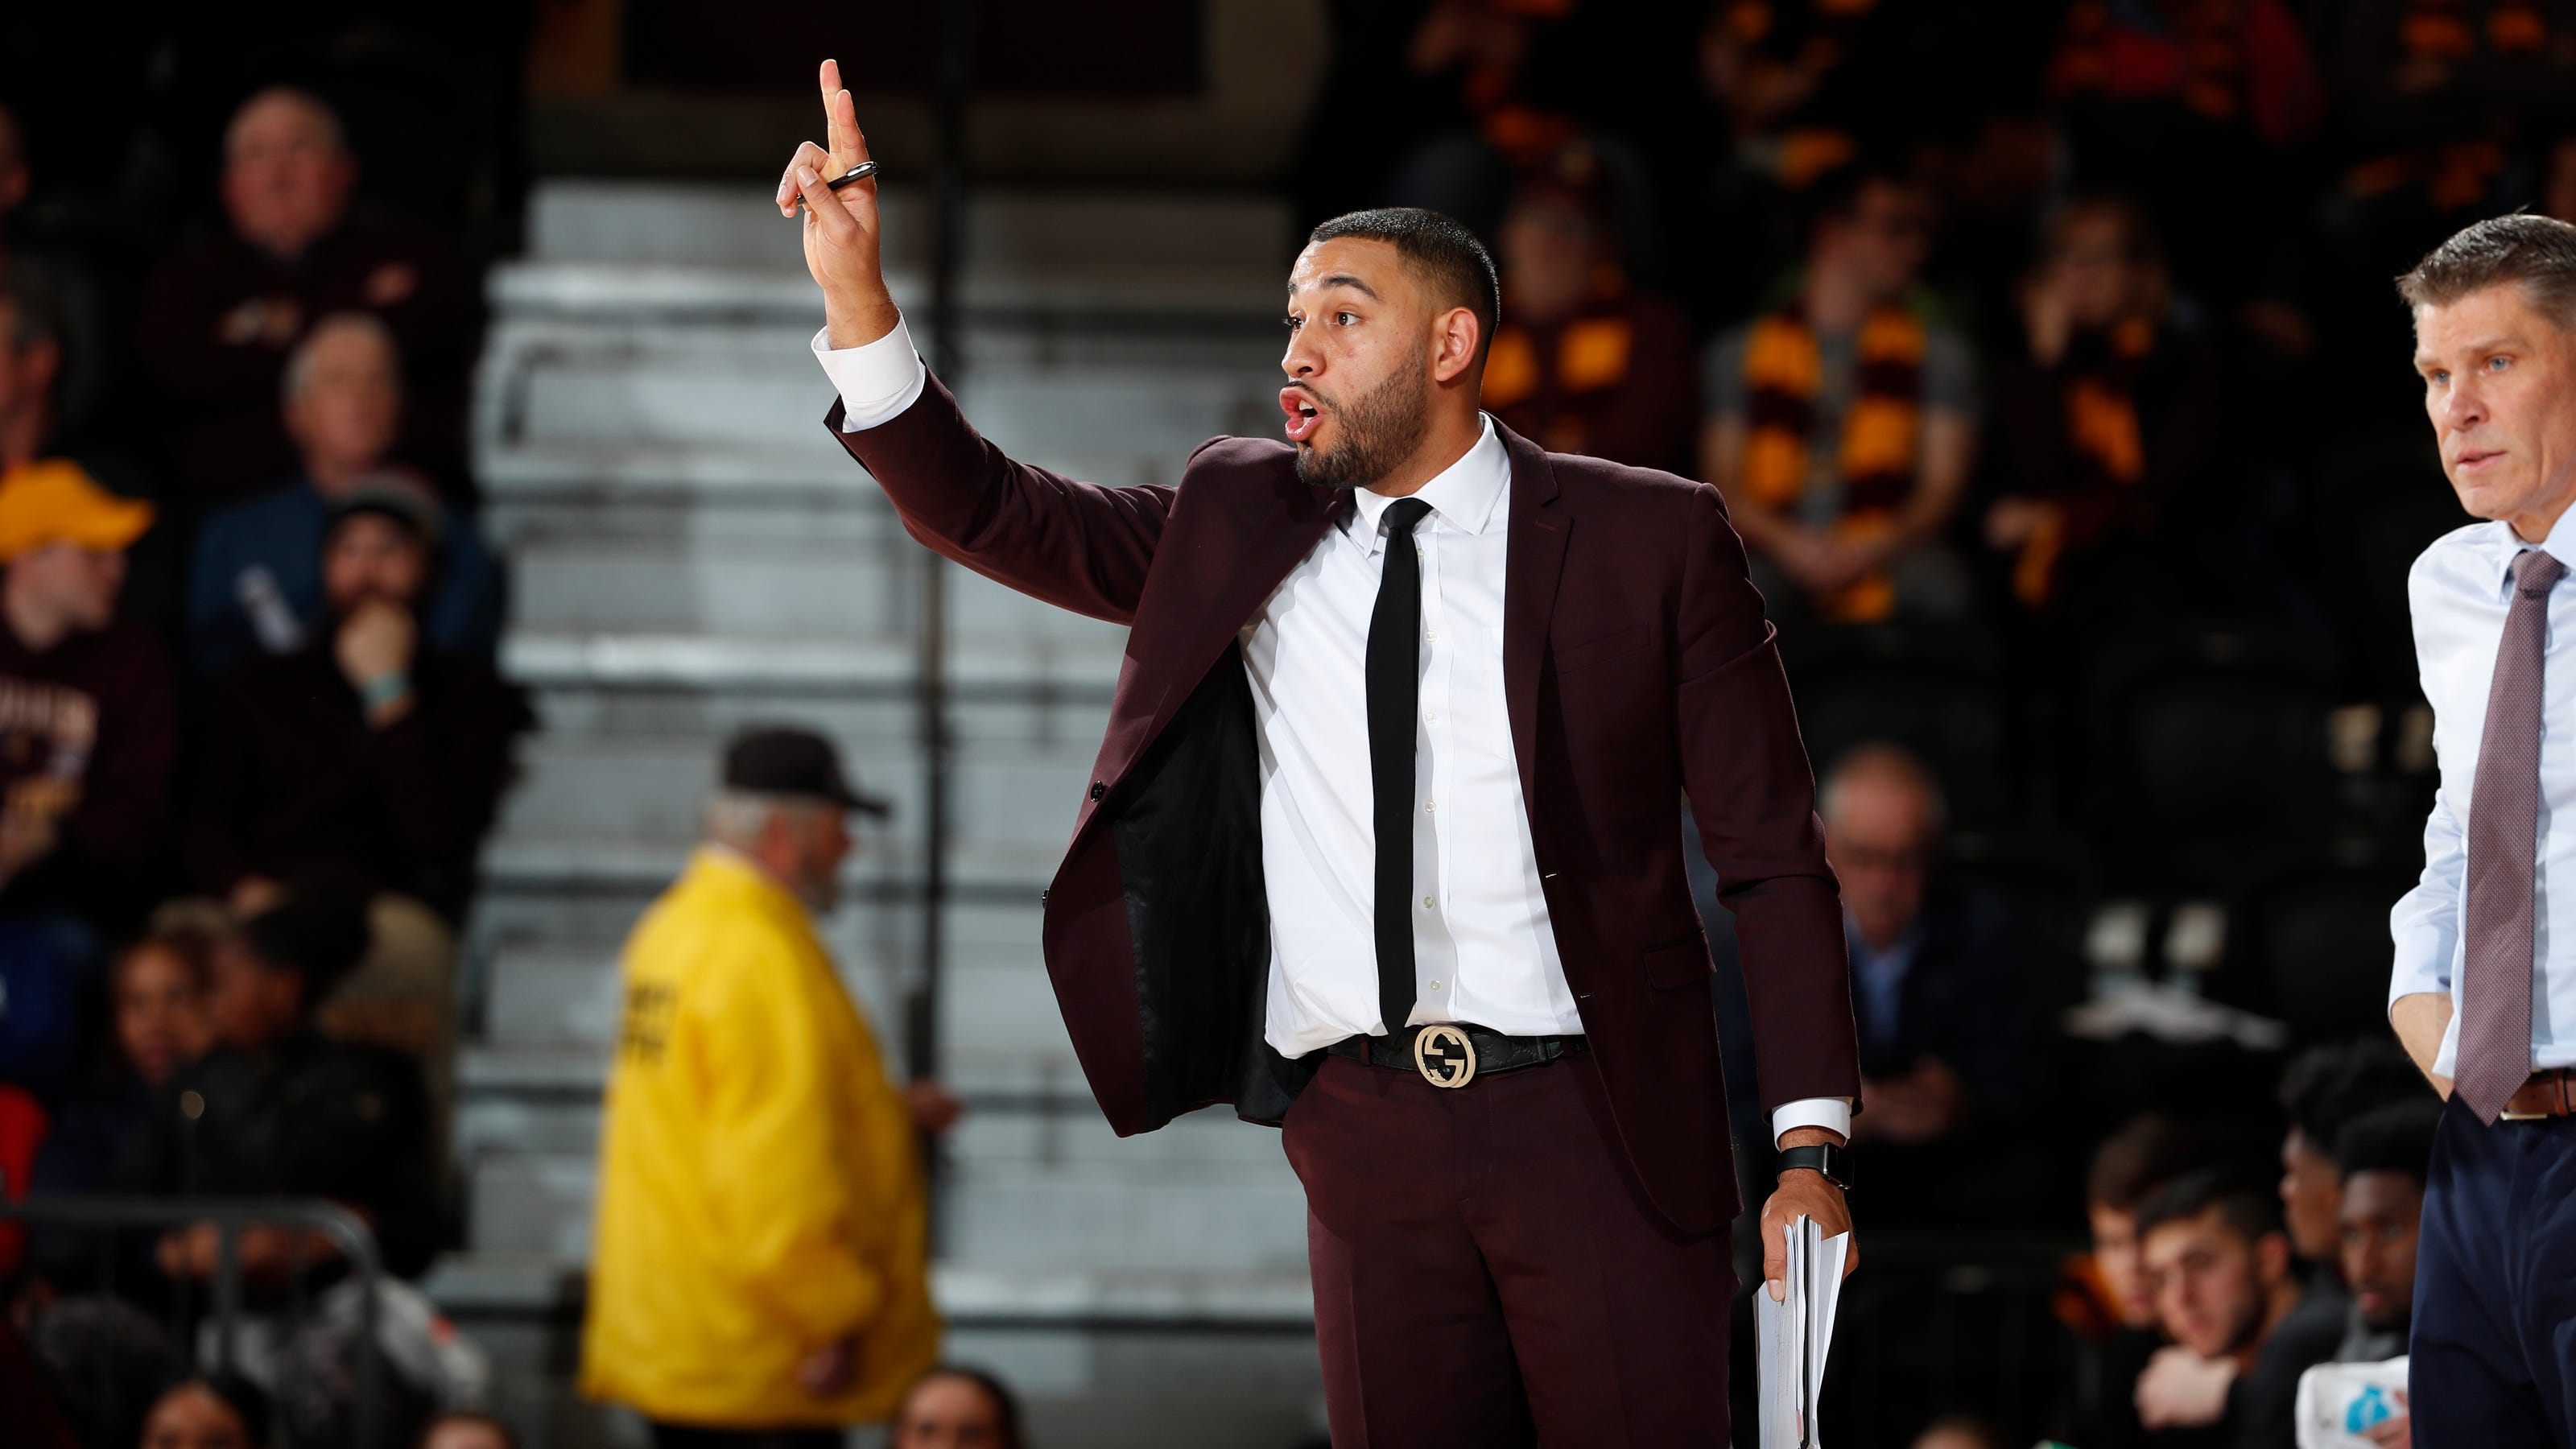 Black Coaches Encouraged After 51% of NCAA Basketball Coaching Vacancies Were Filled by Black Men